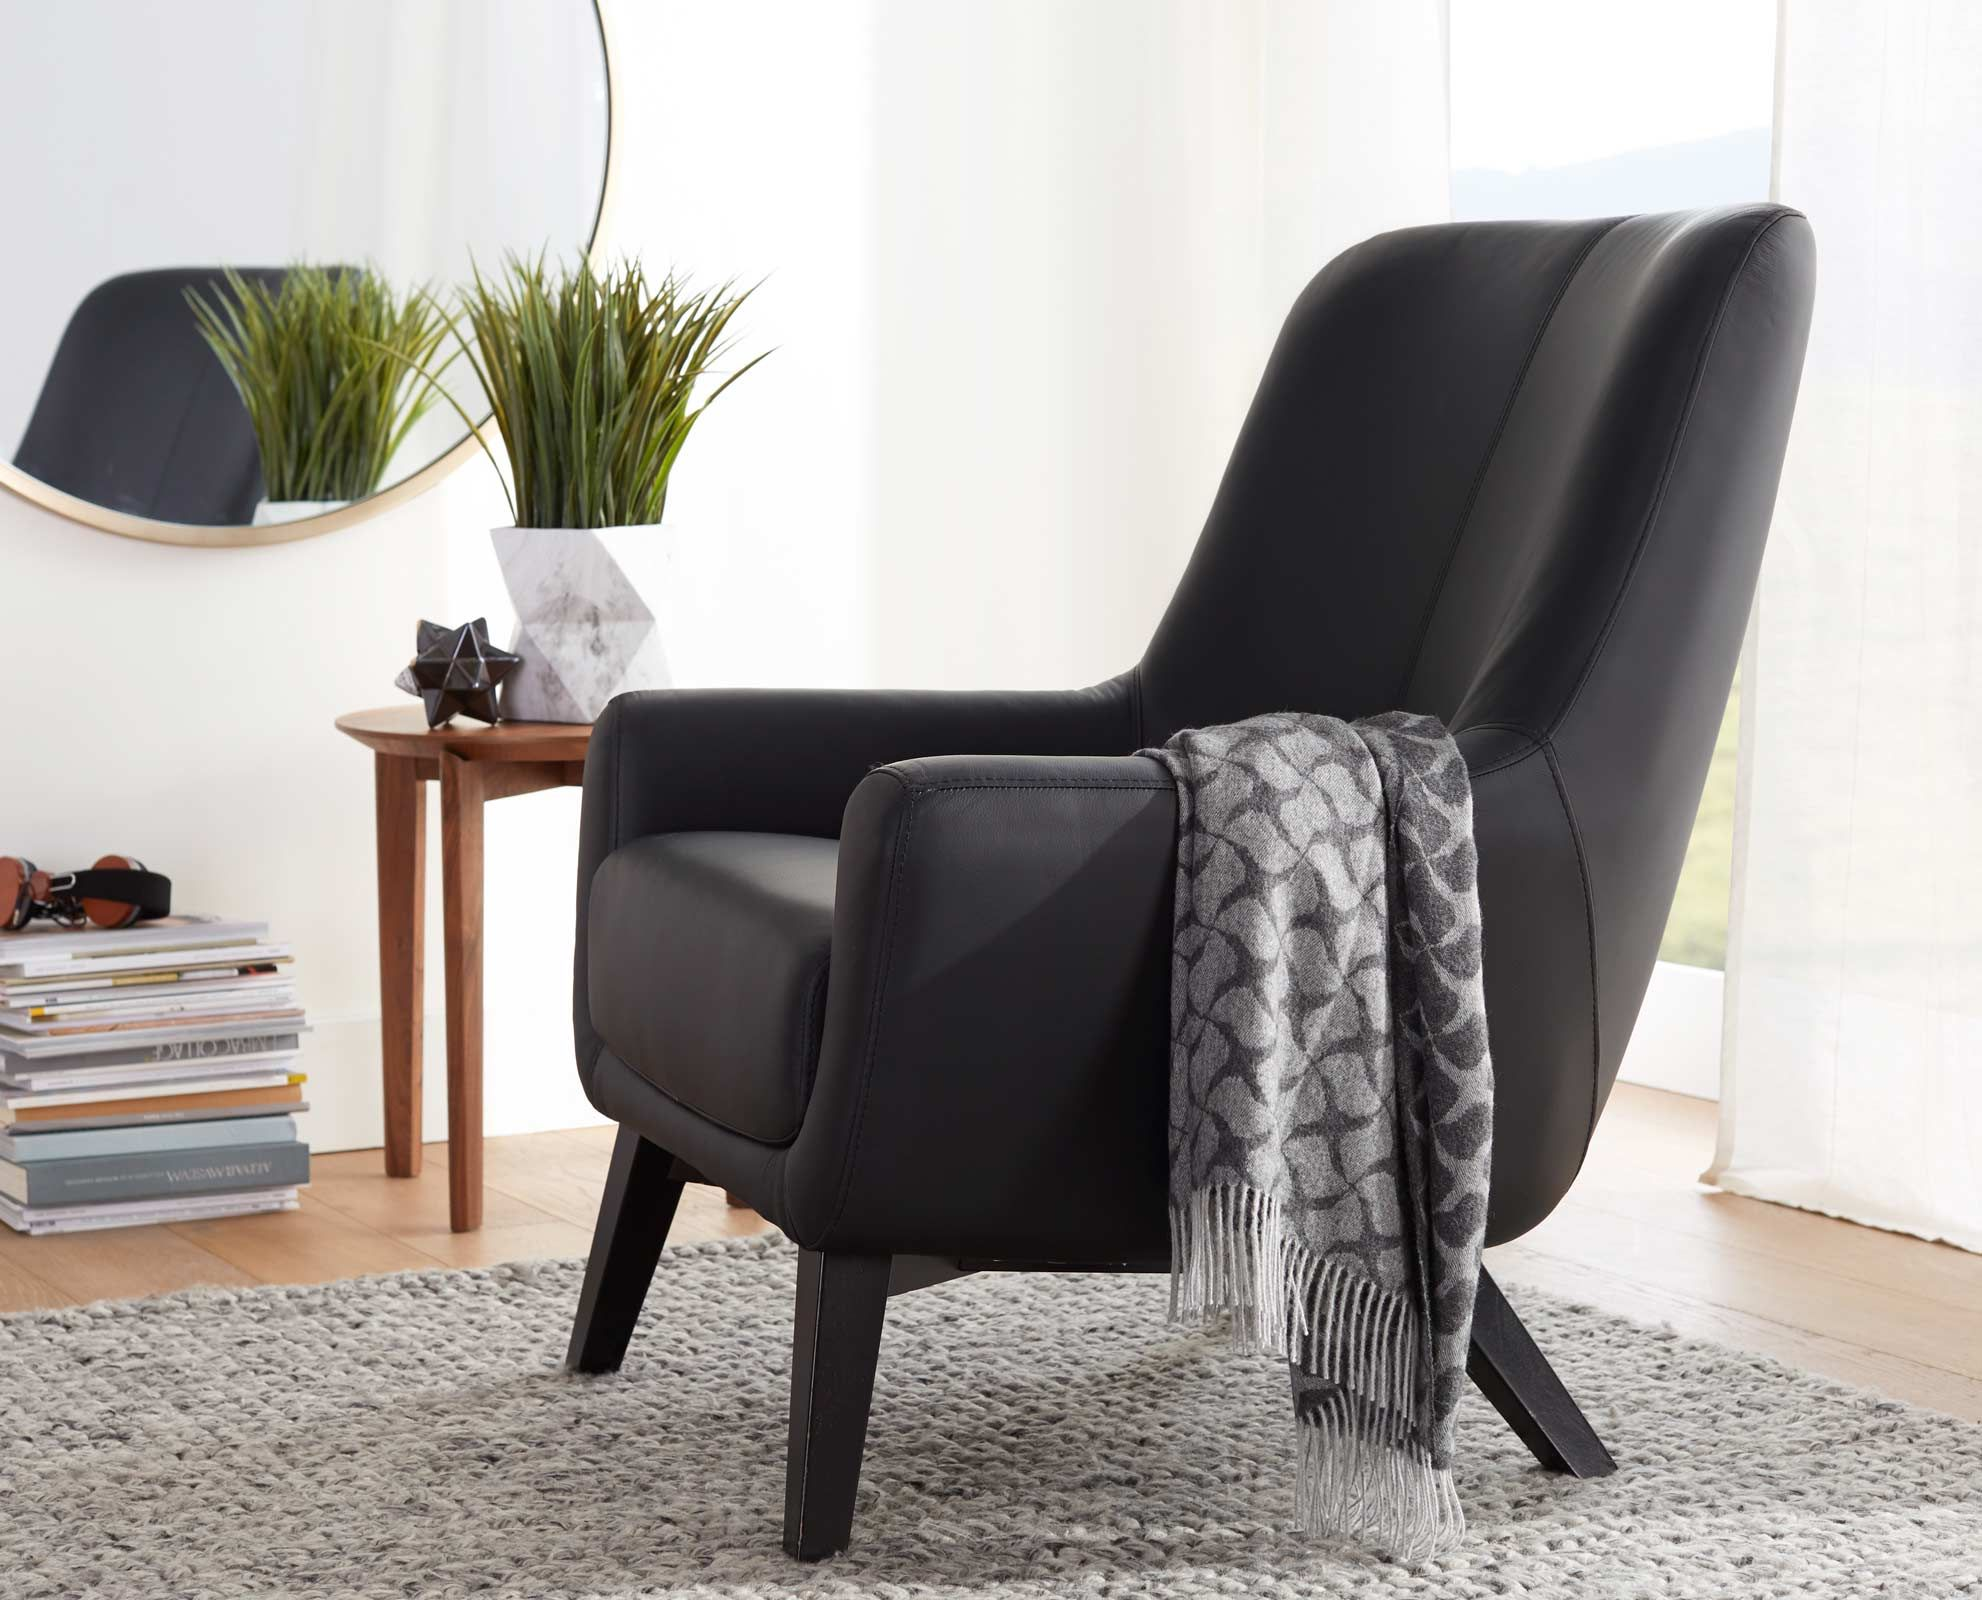 Scandinavian Designs Upholstered In Black Leather With Distinctive Stitching The Gisella Chair Ble Red Leather Chair Leather Wingback Chair Unique Furniture